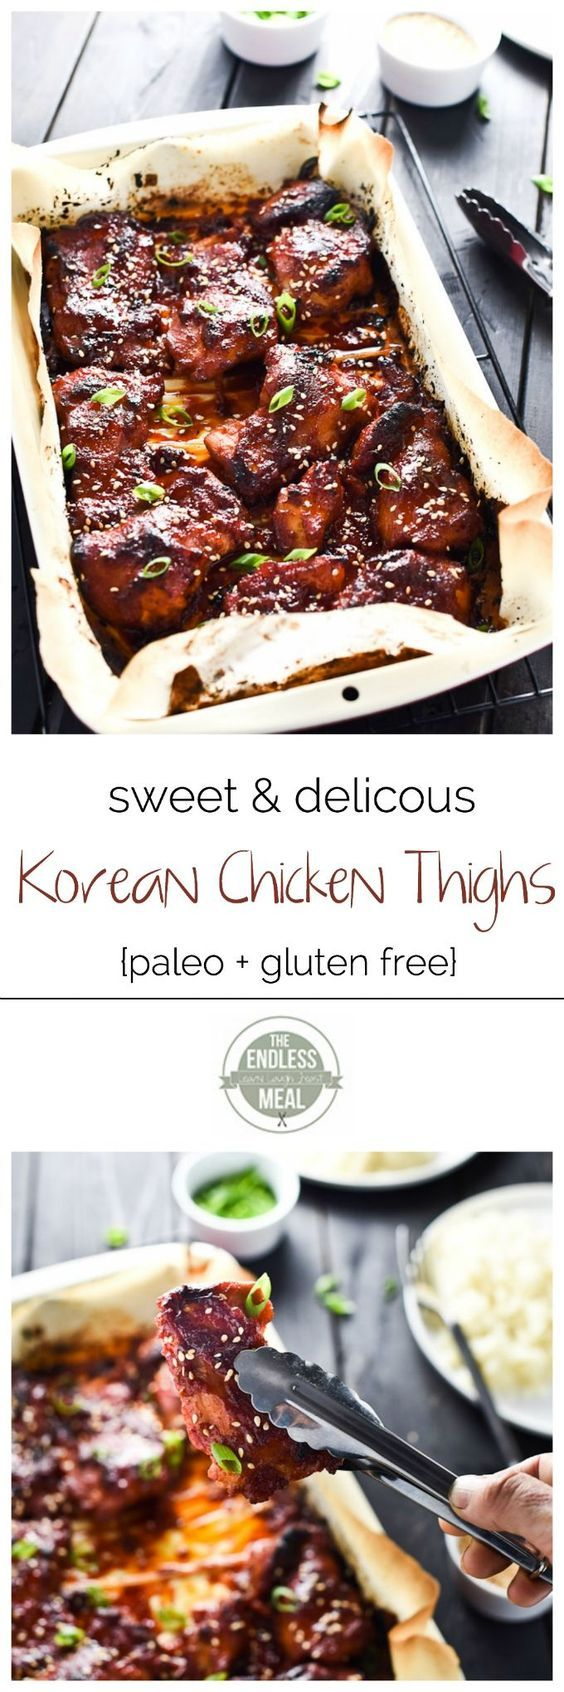 Sweet Korean Paleo Chicken Thighs with Cauliflower Rice | A super easy to make and incredibly delicious paleo meal your whole family will love! |Sweet Korean Paleo Chicken Thighs with Cauliflower Rice | A super easy to make and incredibly delicious paleo meal your whole family will love! |theendlessmeal